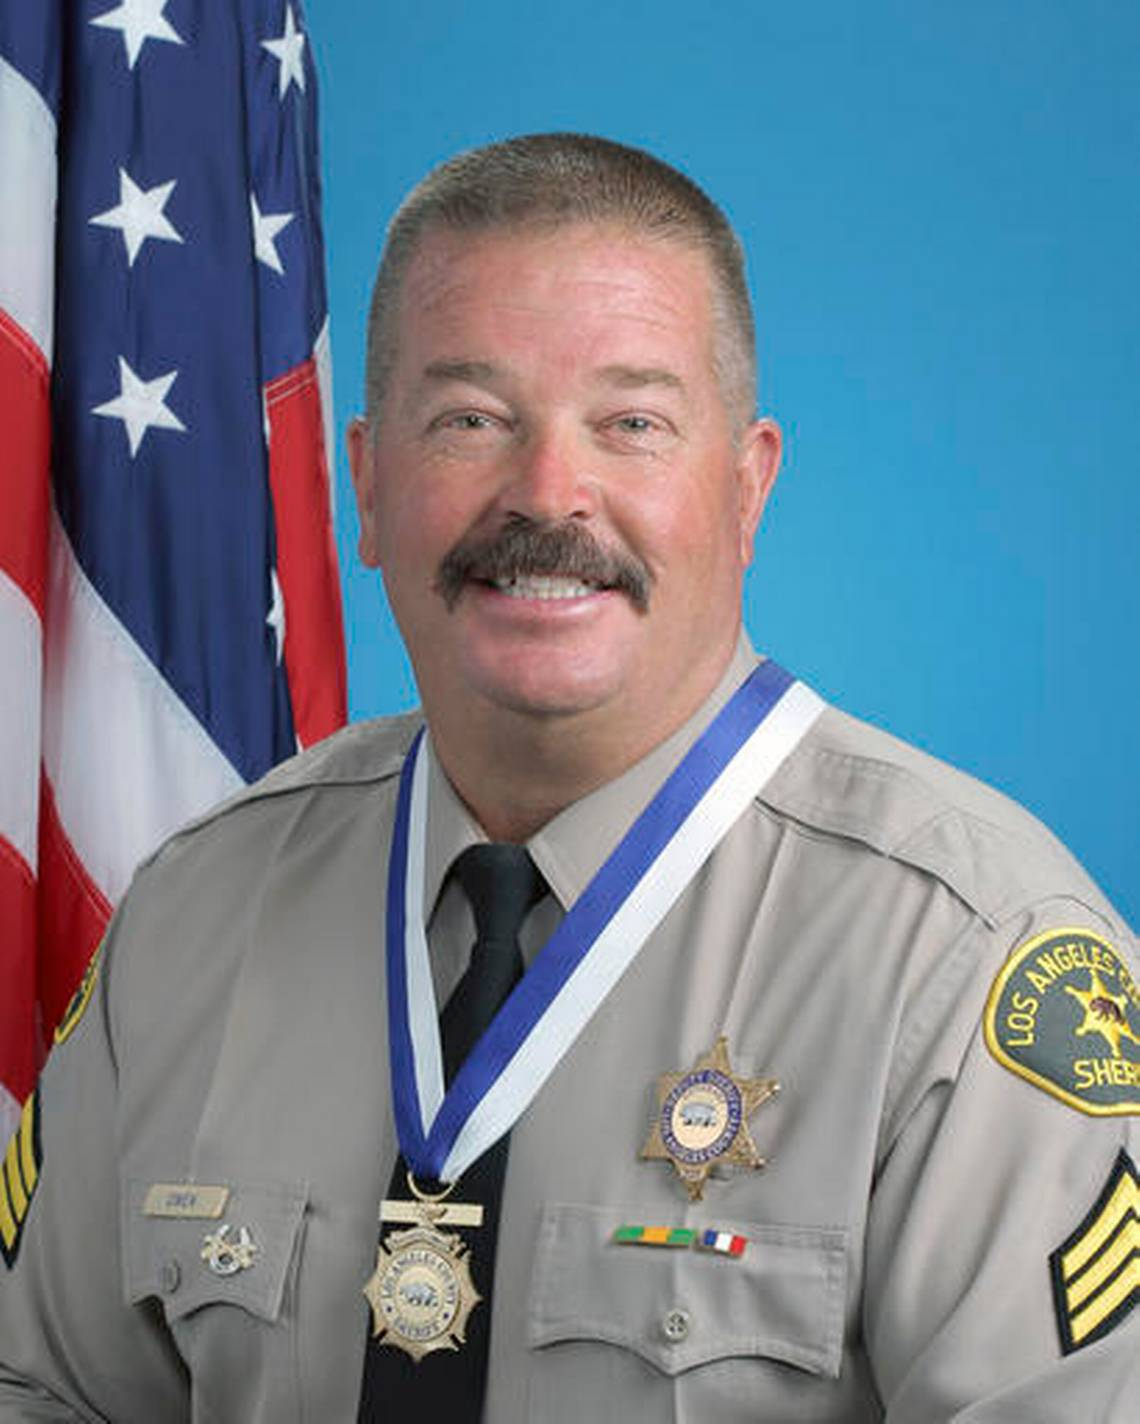 Los Angeles County Sheriff's Sergeant Shot in Lancaster, California